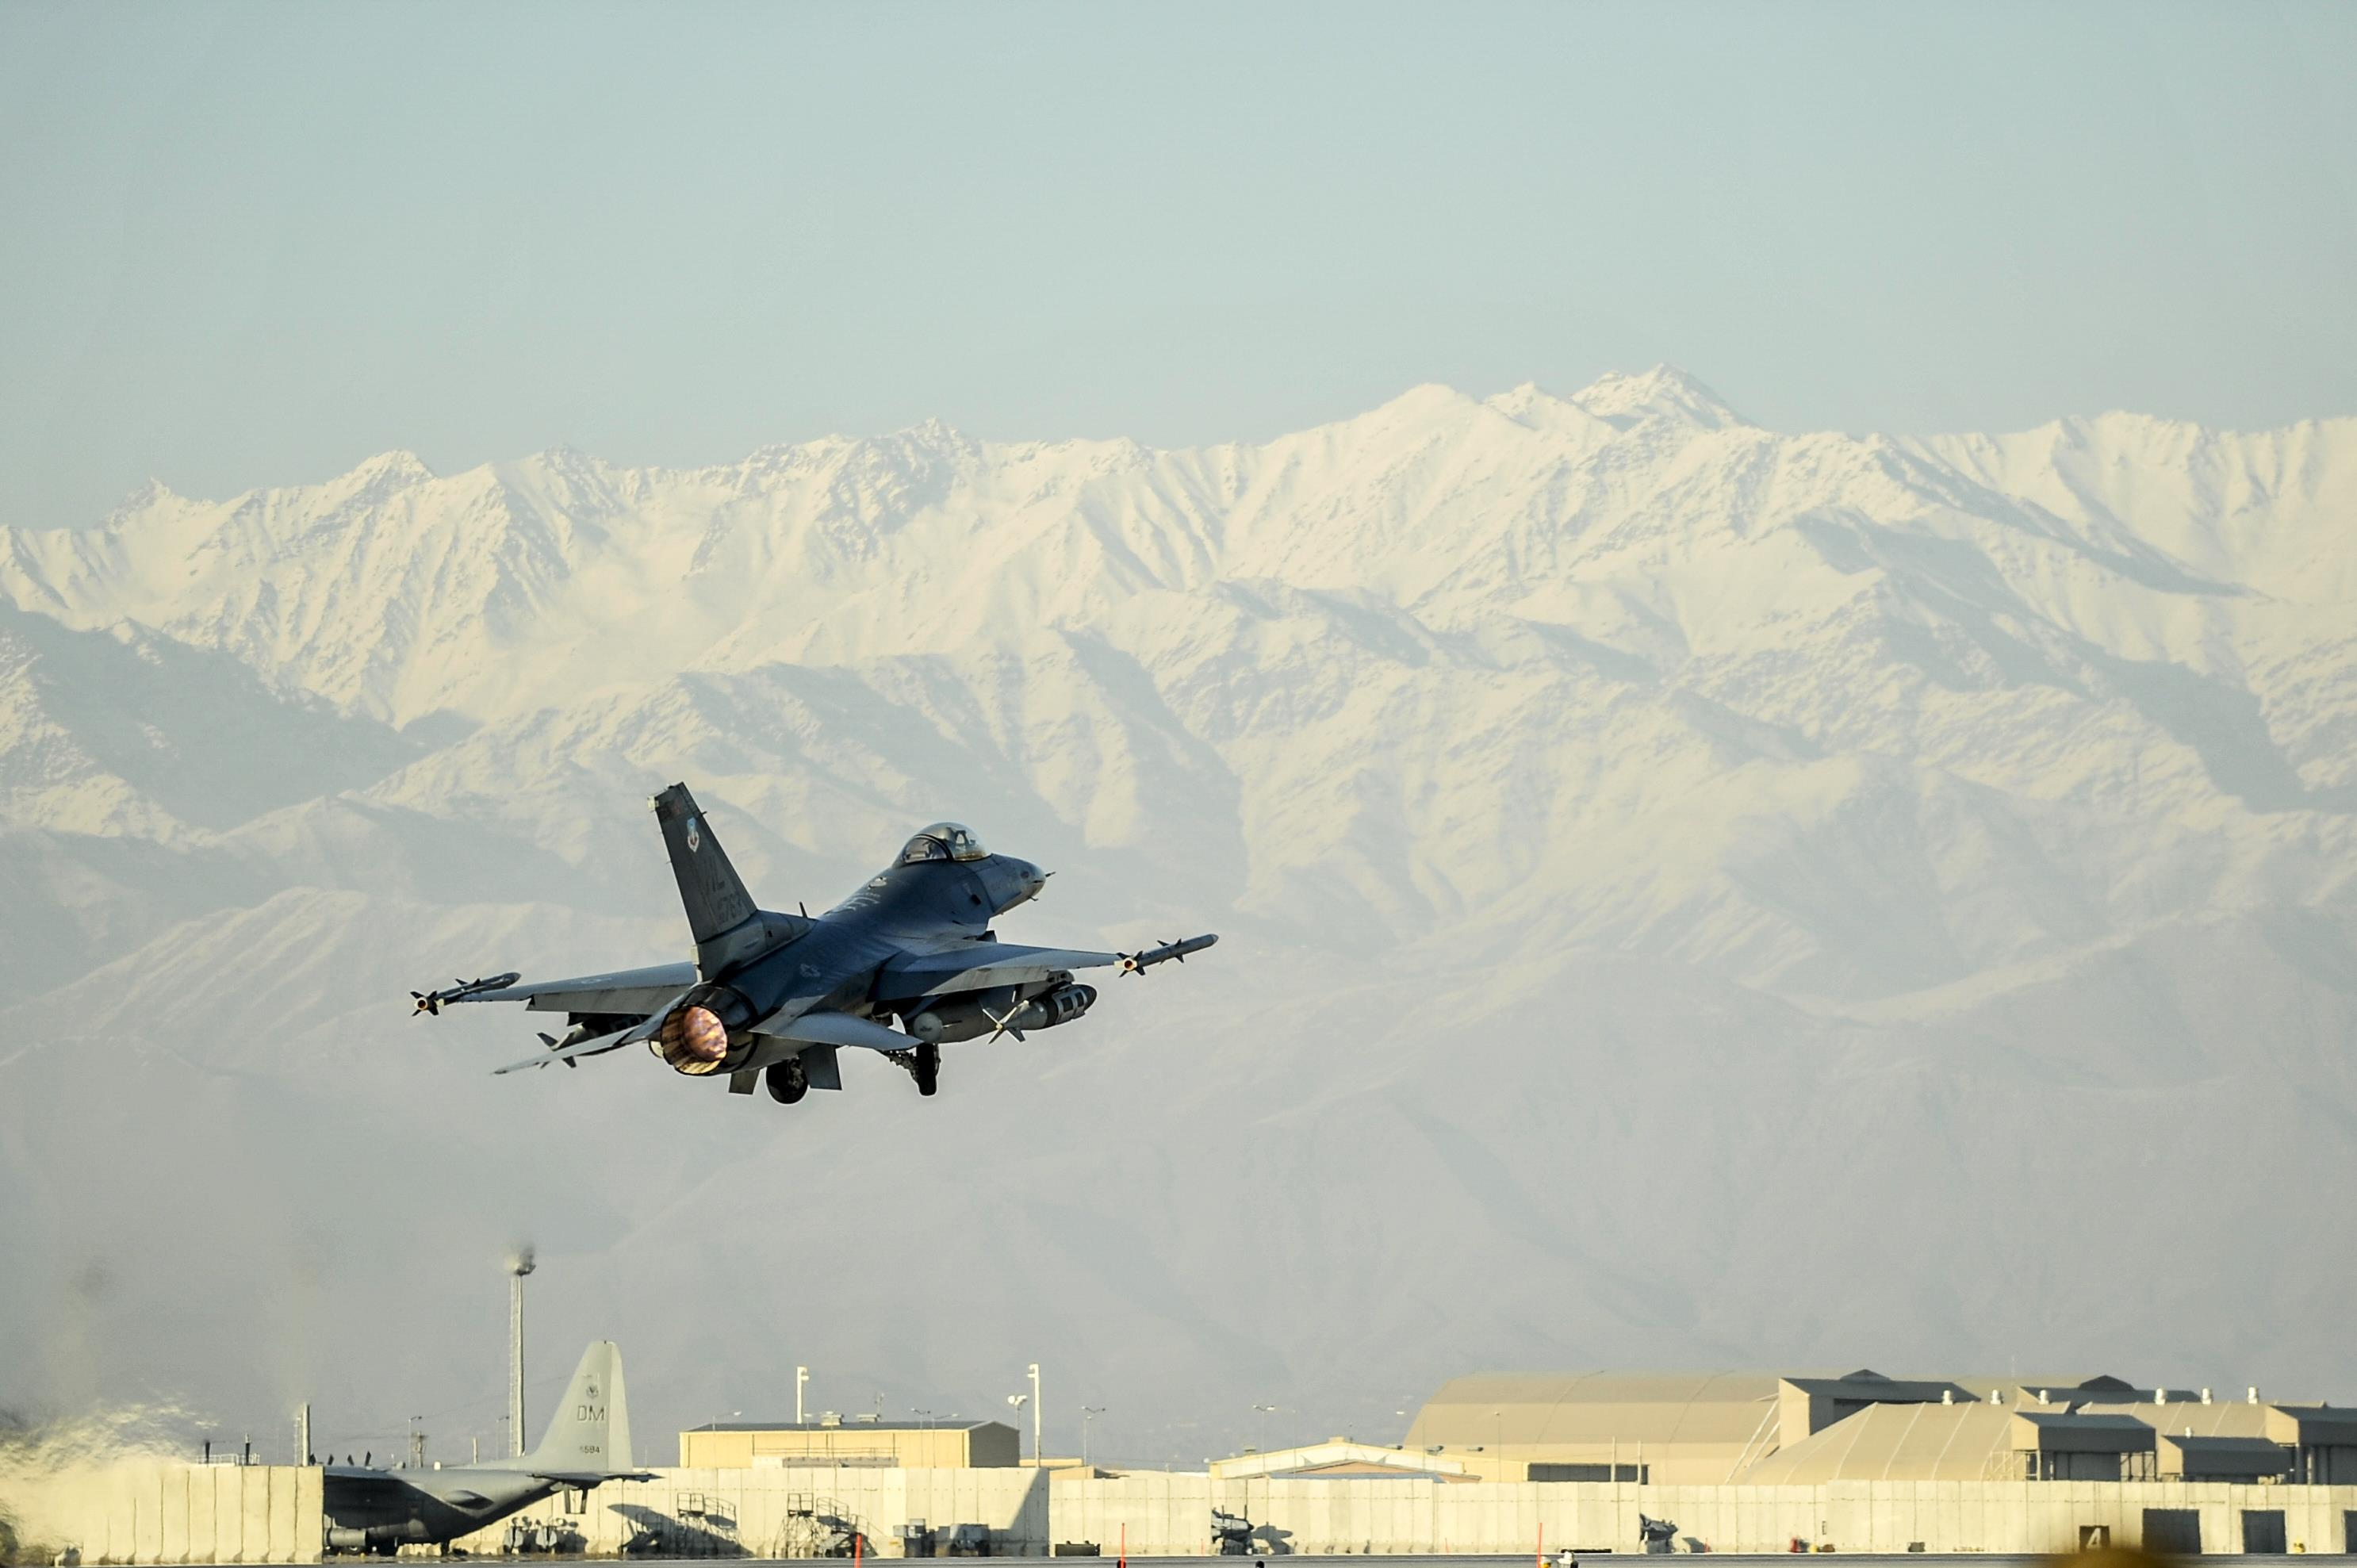 421st EFS 'Black Widows' provide combat airpower A US F-16 jet takes off in Afghanistan before a horizon of snow-capped mountains